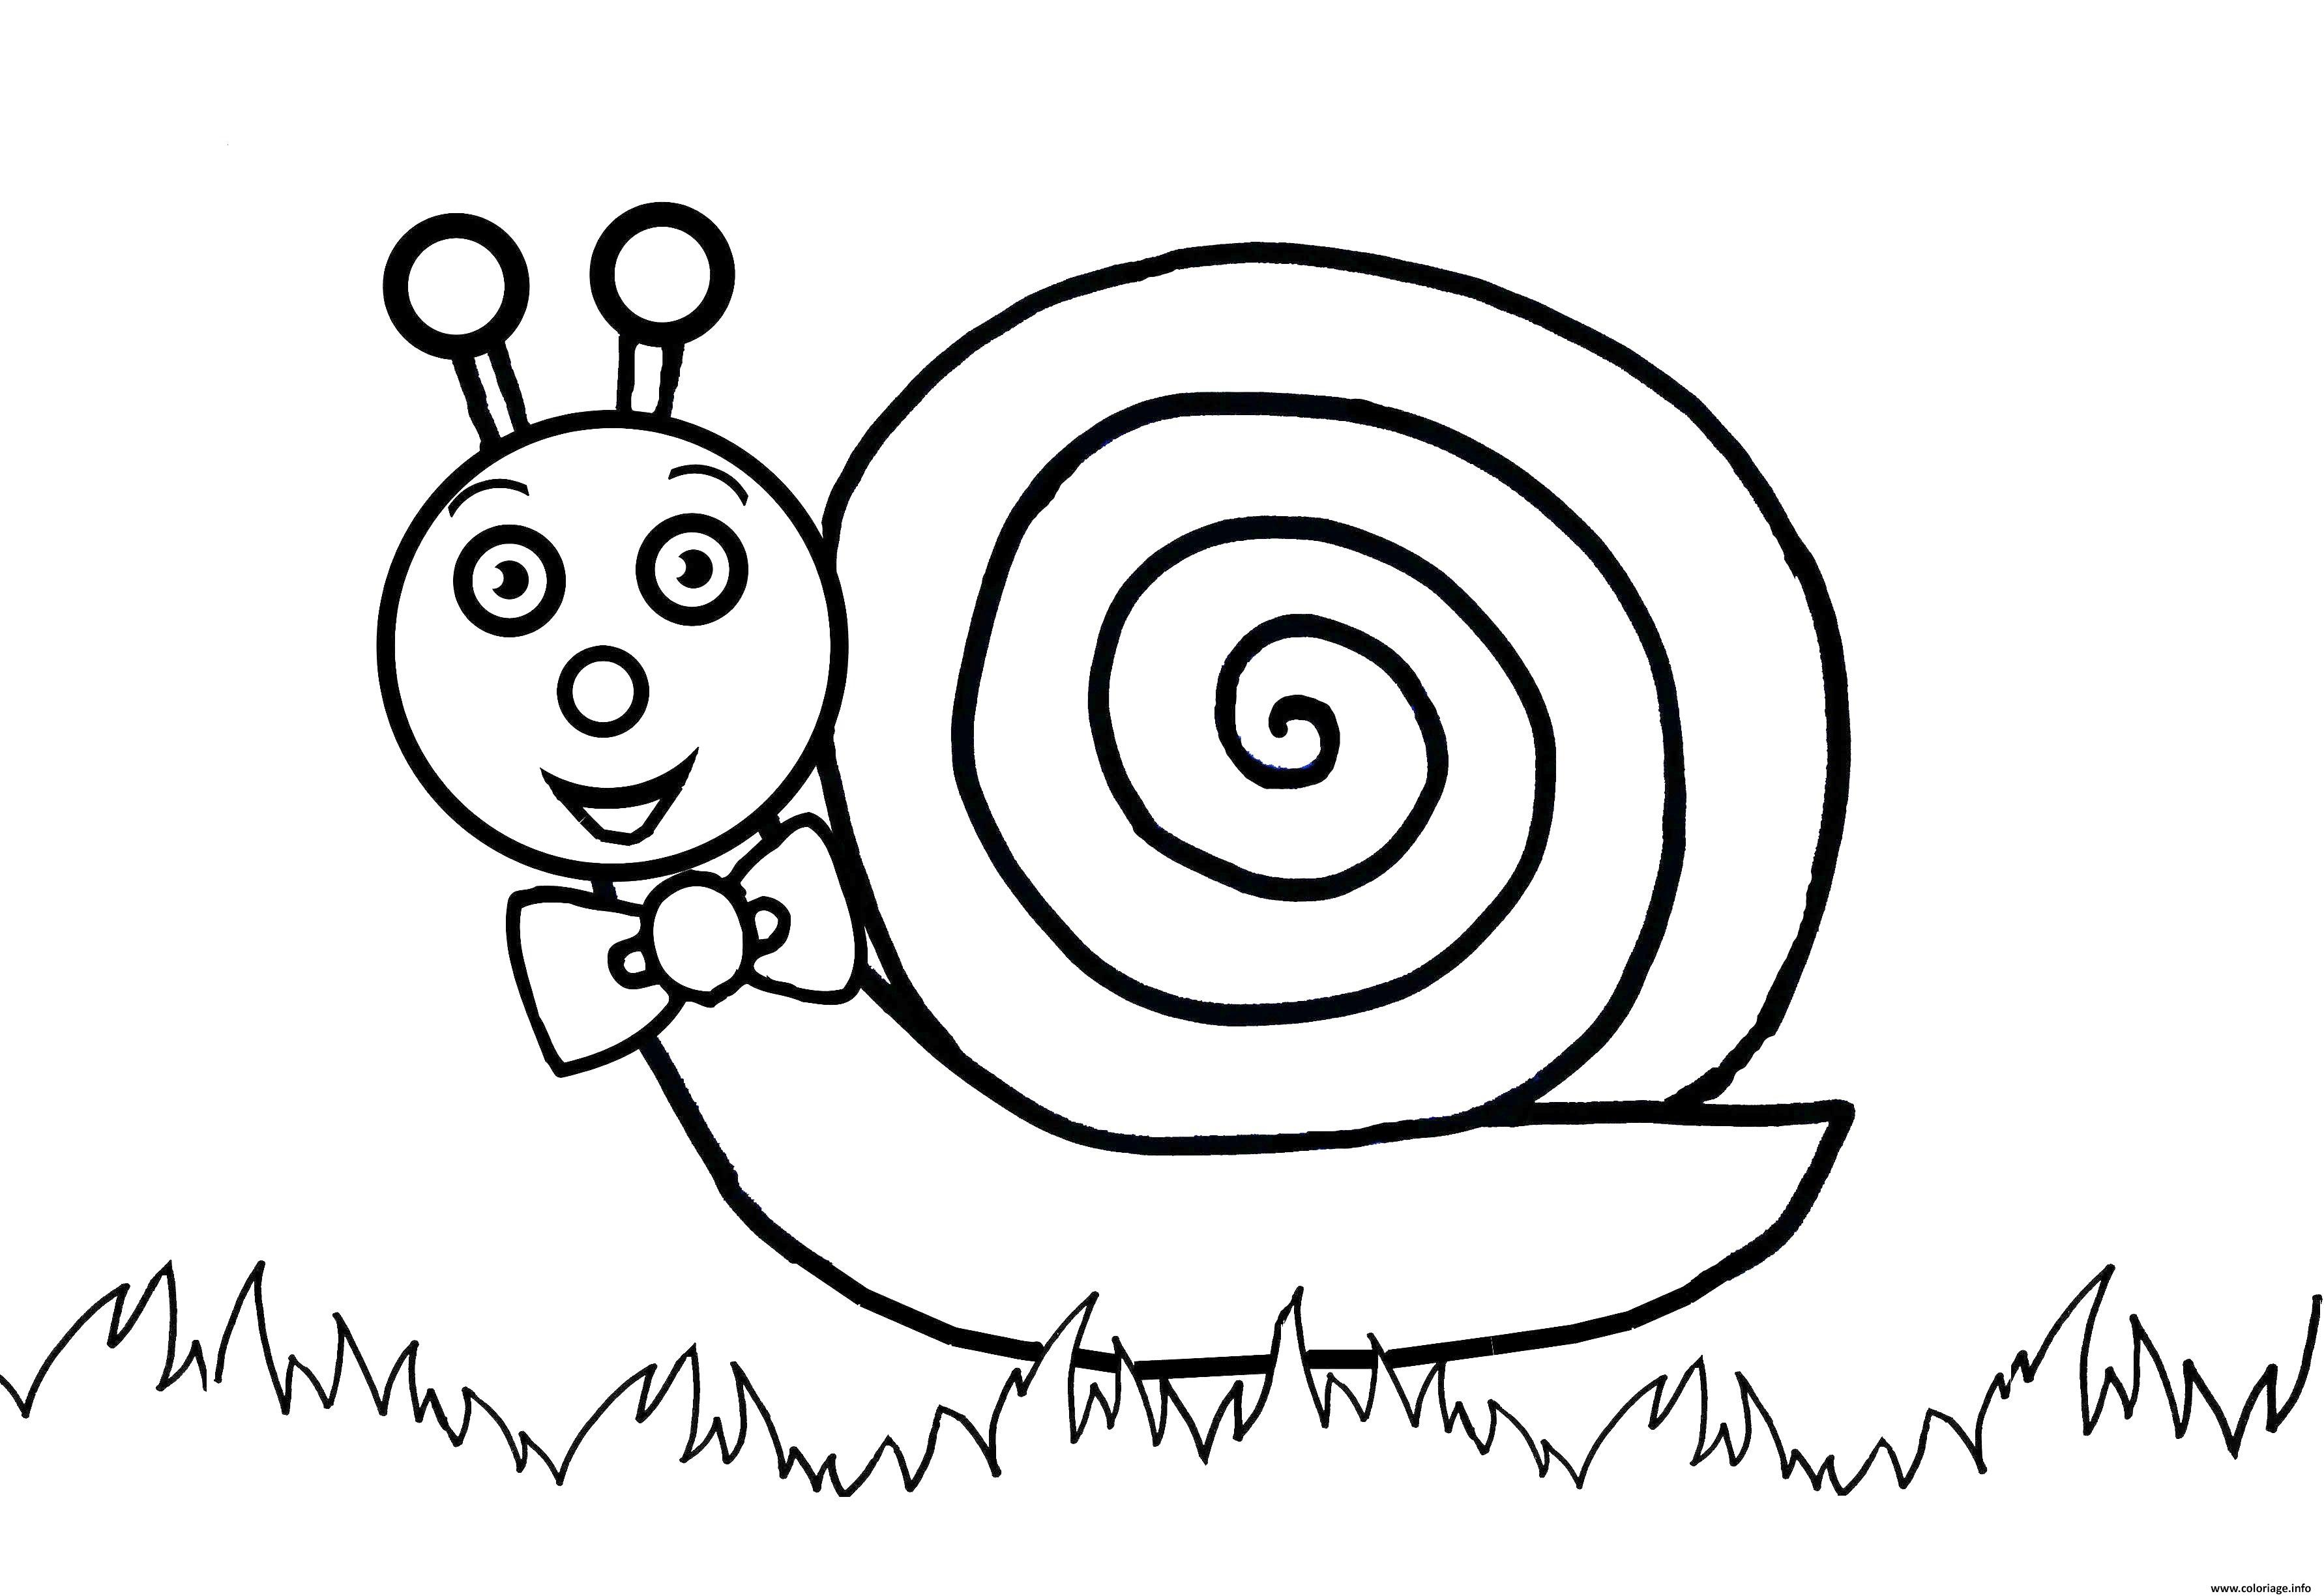 Coloriage escargot avec un grand sourire - Escargot dessin ...